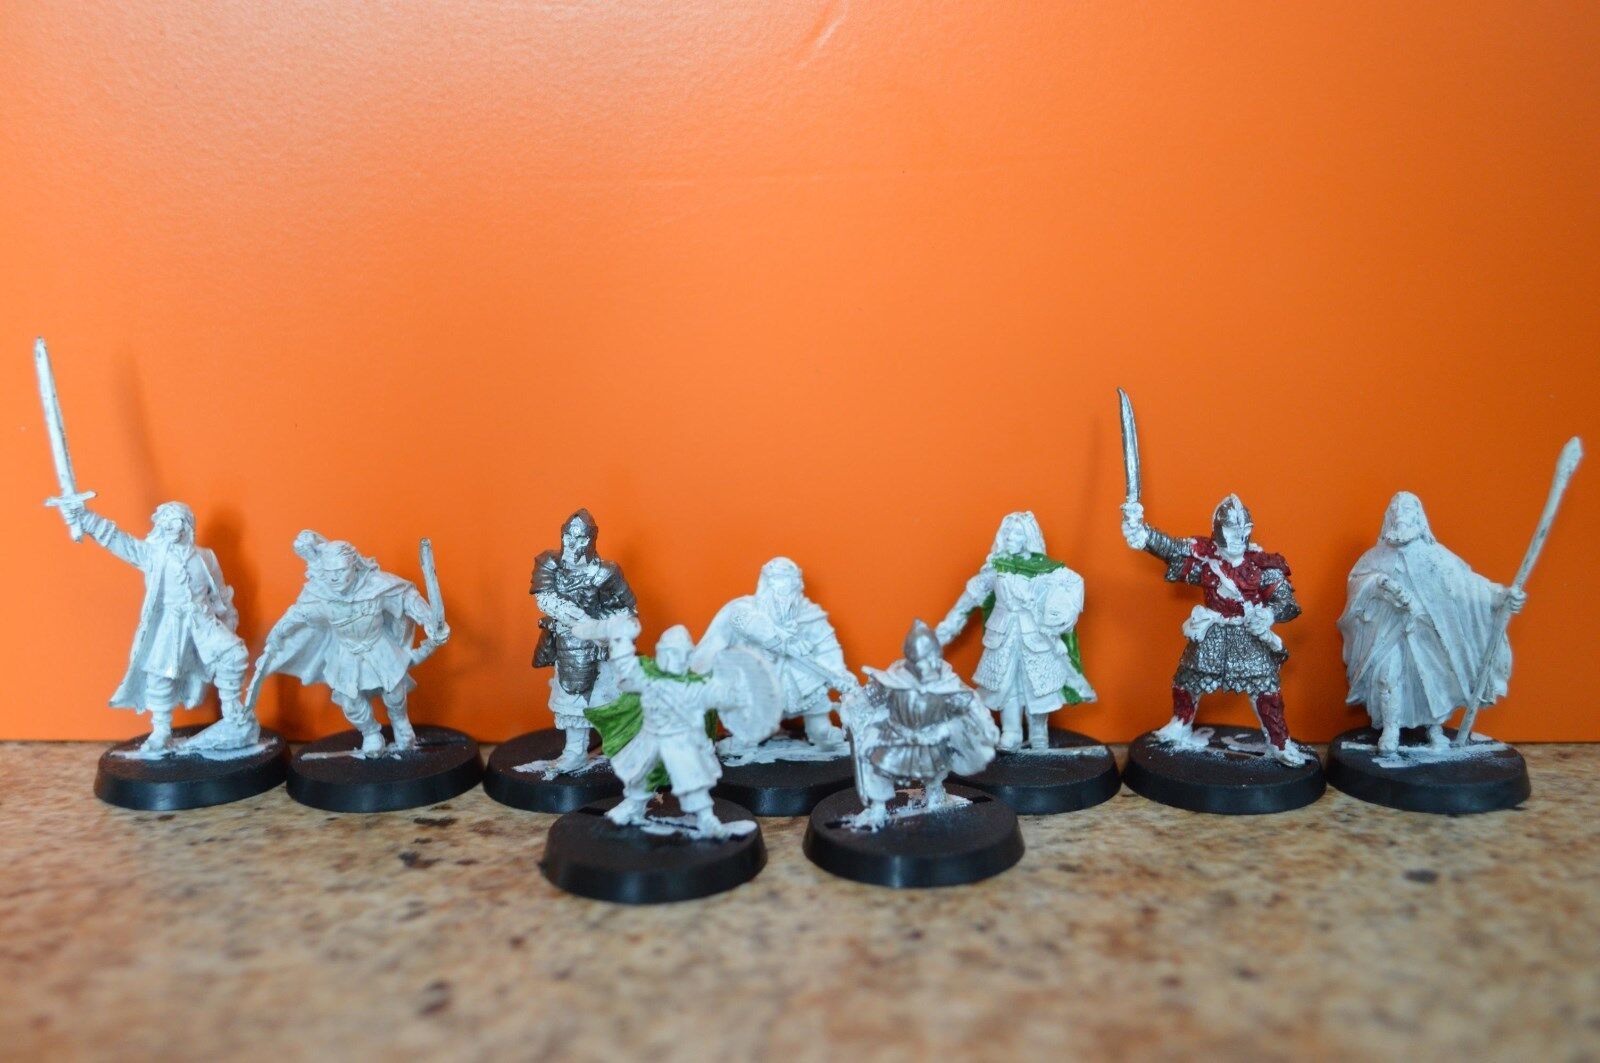 Games workshop LOTR Figuras De Metal Héroes Del Oeste 9 figuras-Nov 2003